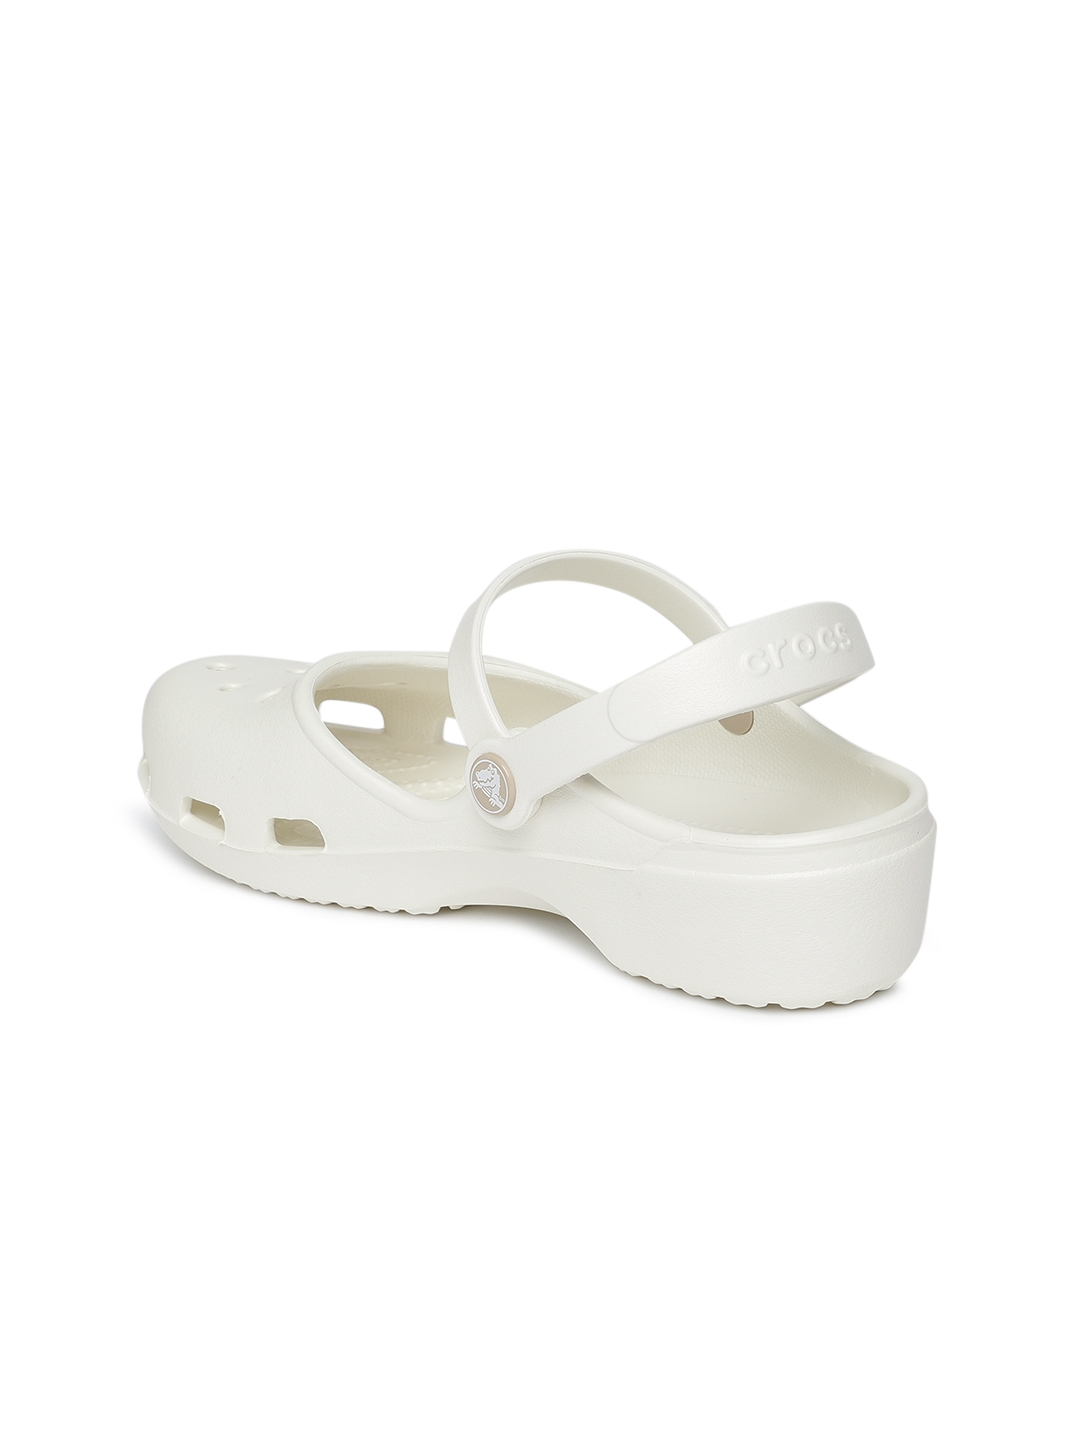 Buy Crocs Women White Solid Clogs - Flip Flops for Women 8452311 ... 7c7680ab4e